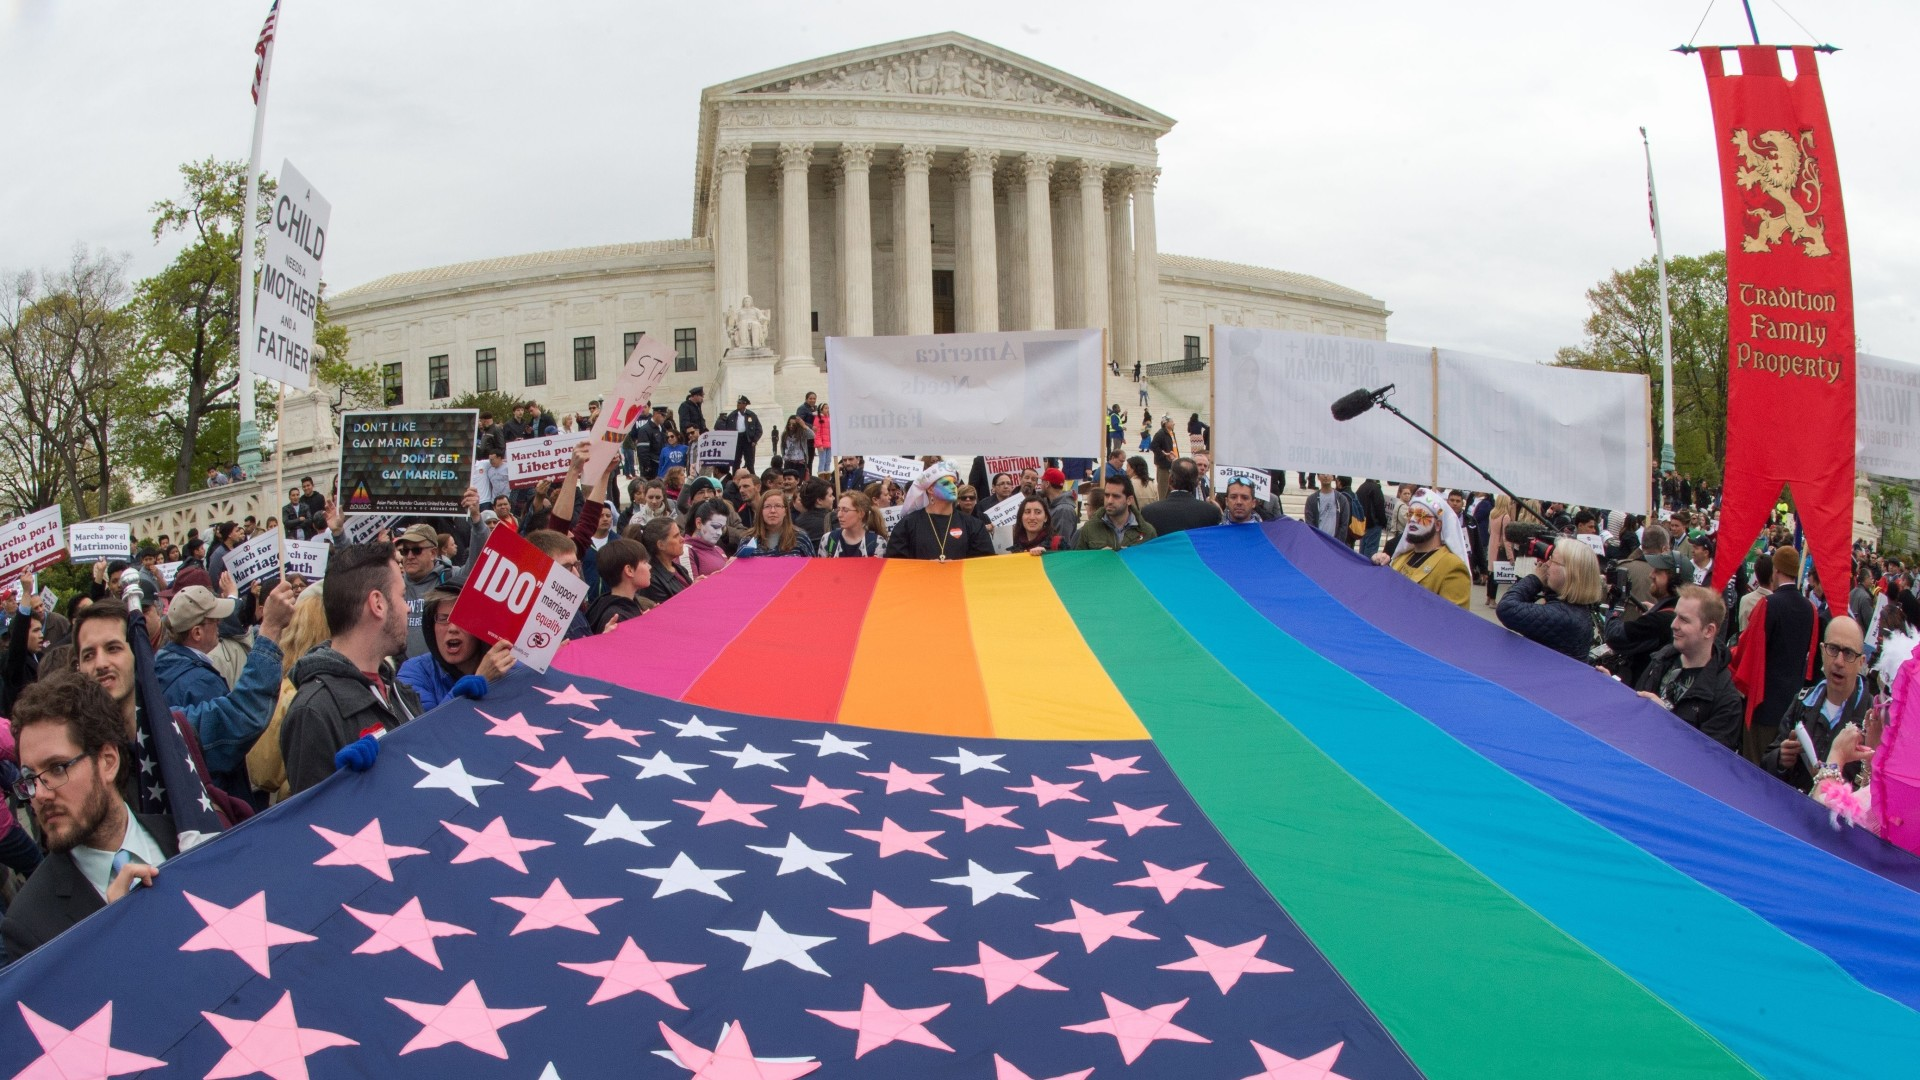 Protesters hold a pro-gay rights flag outside the U.S. Supreme Court in April 2015.